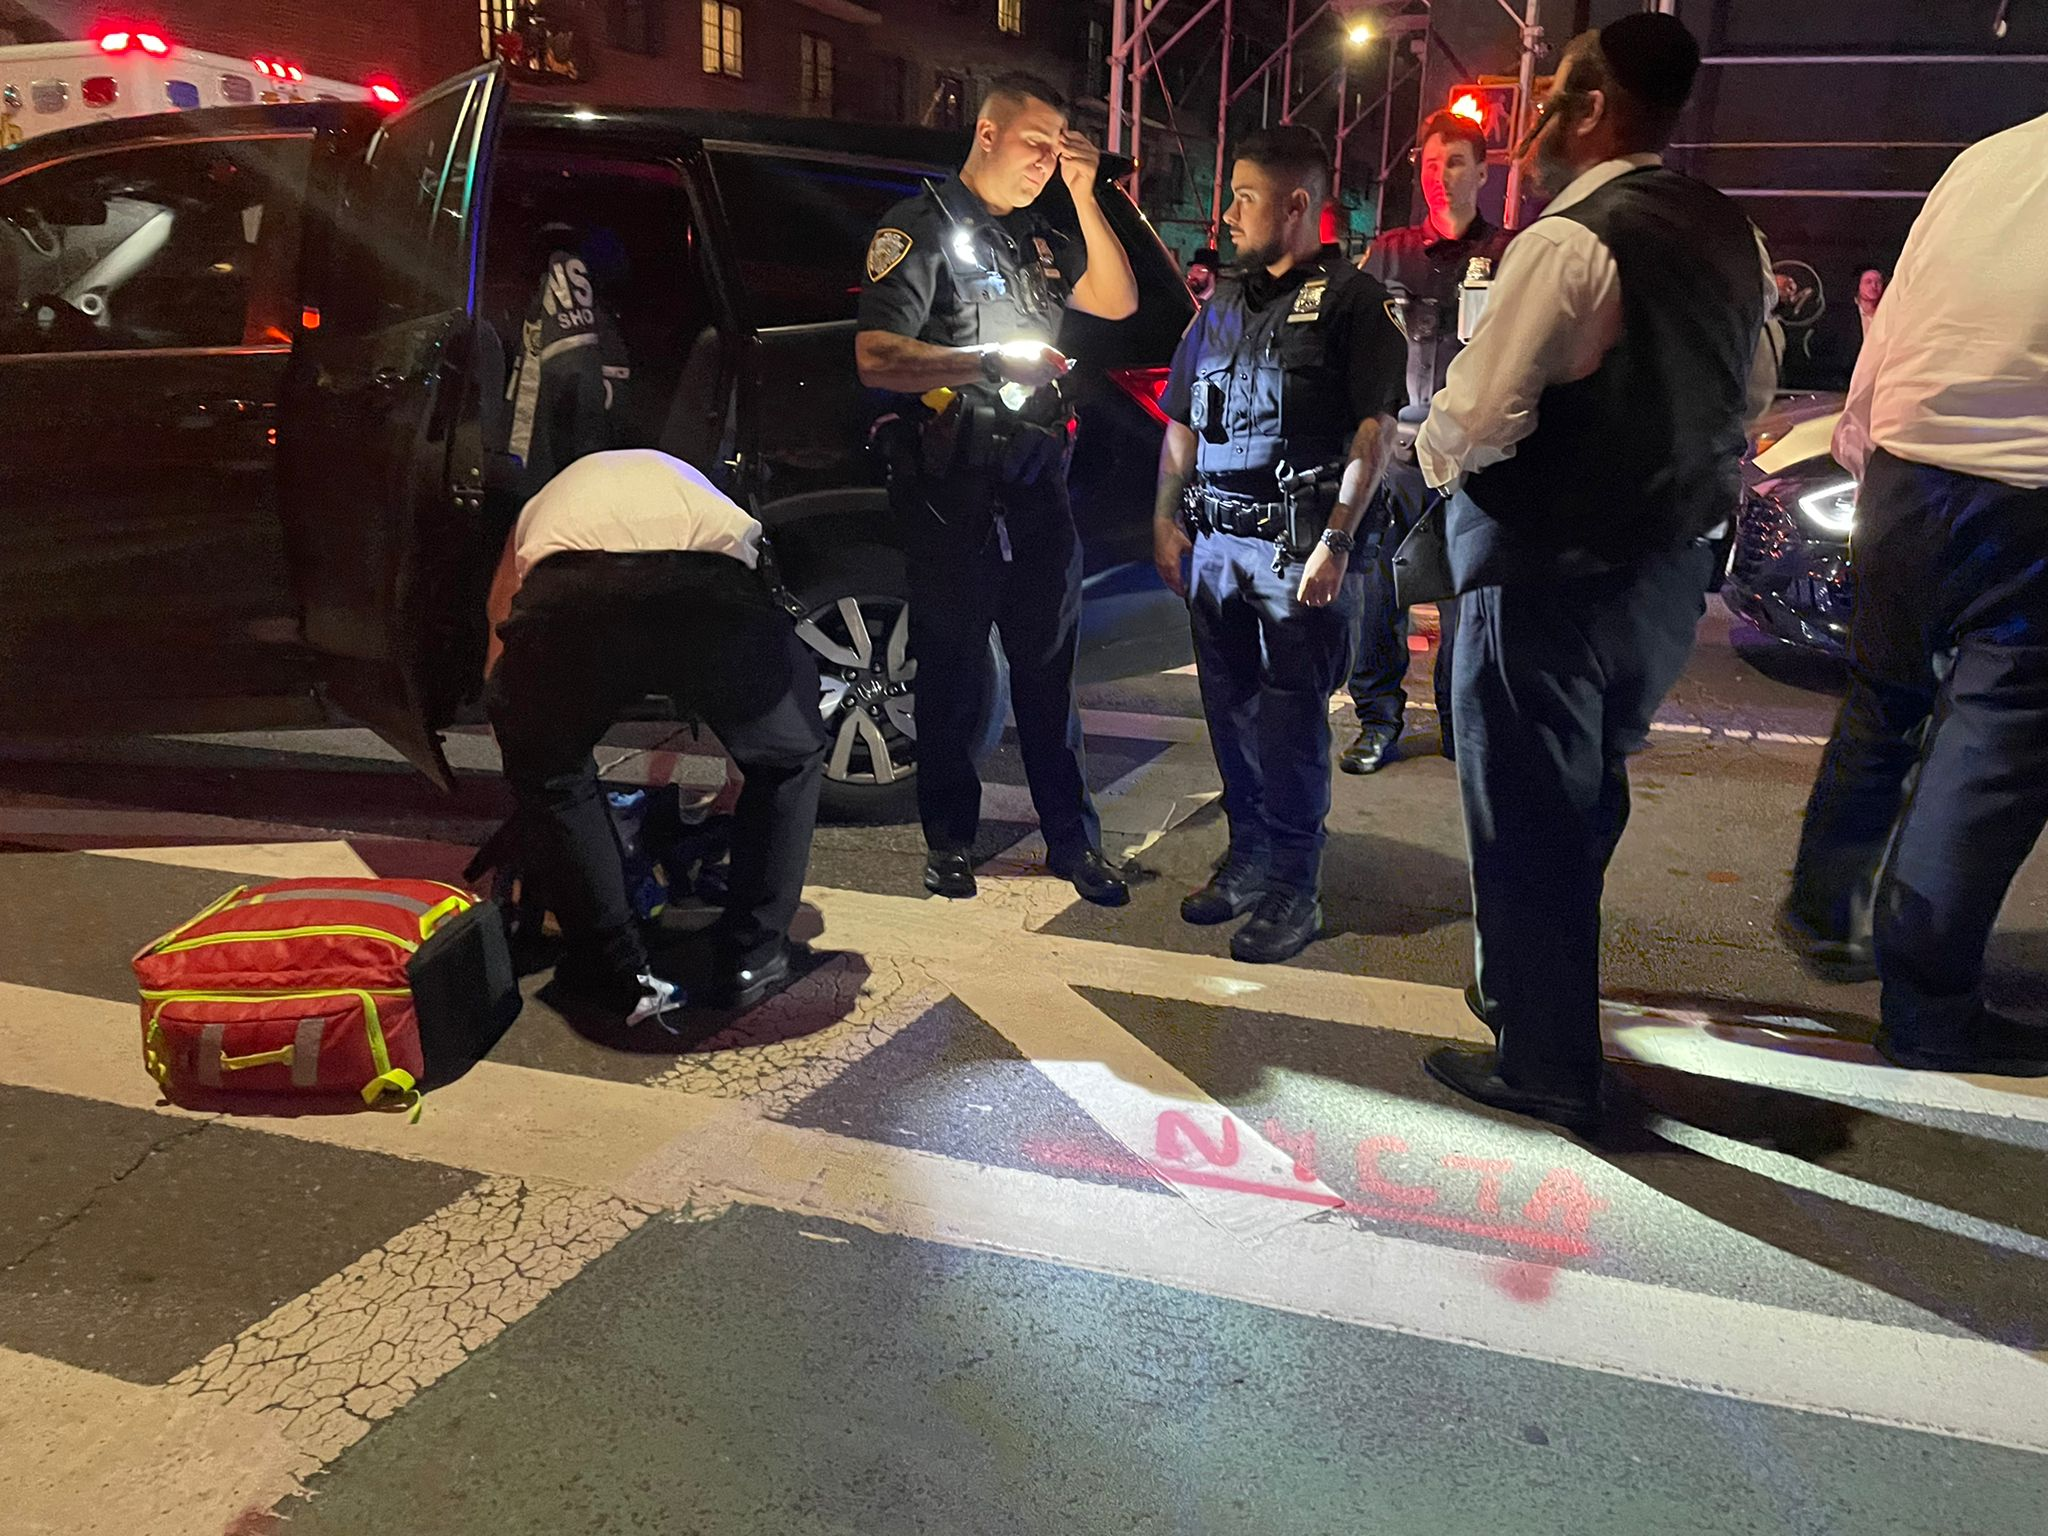 DRAMA IN WILLIAMSBURG: 2 civilians, 1 police officer injured in a paint ball shooting attack.